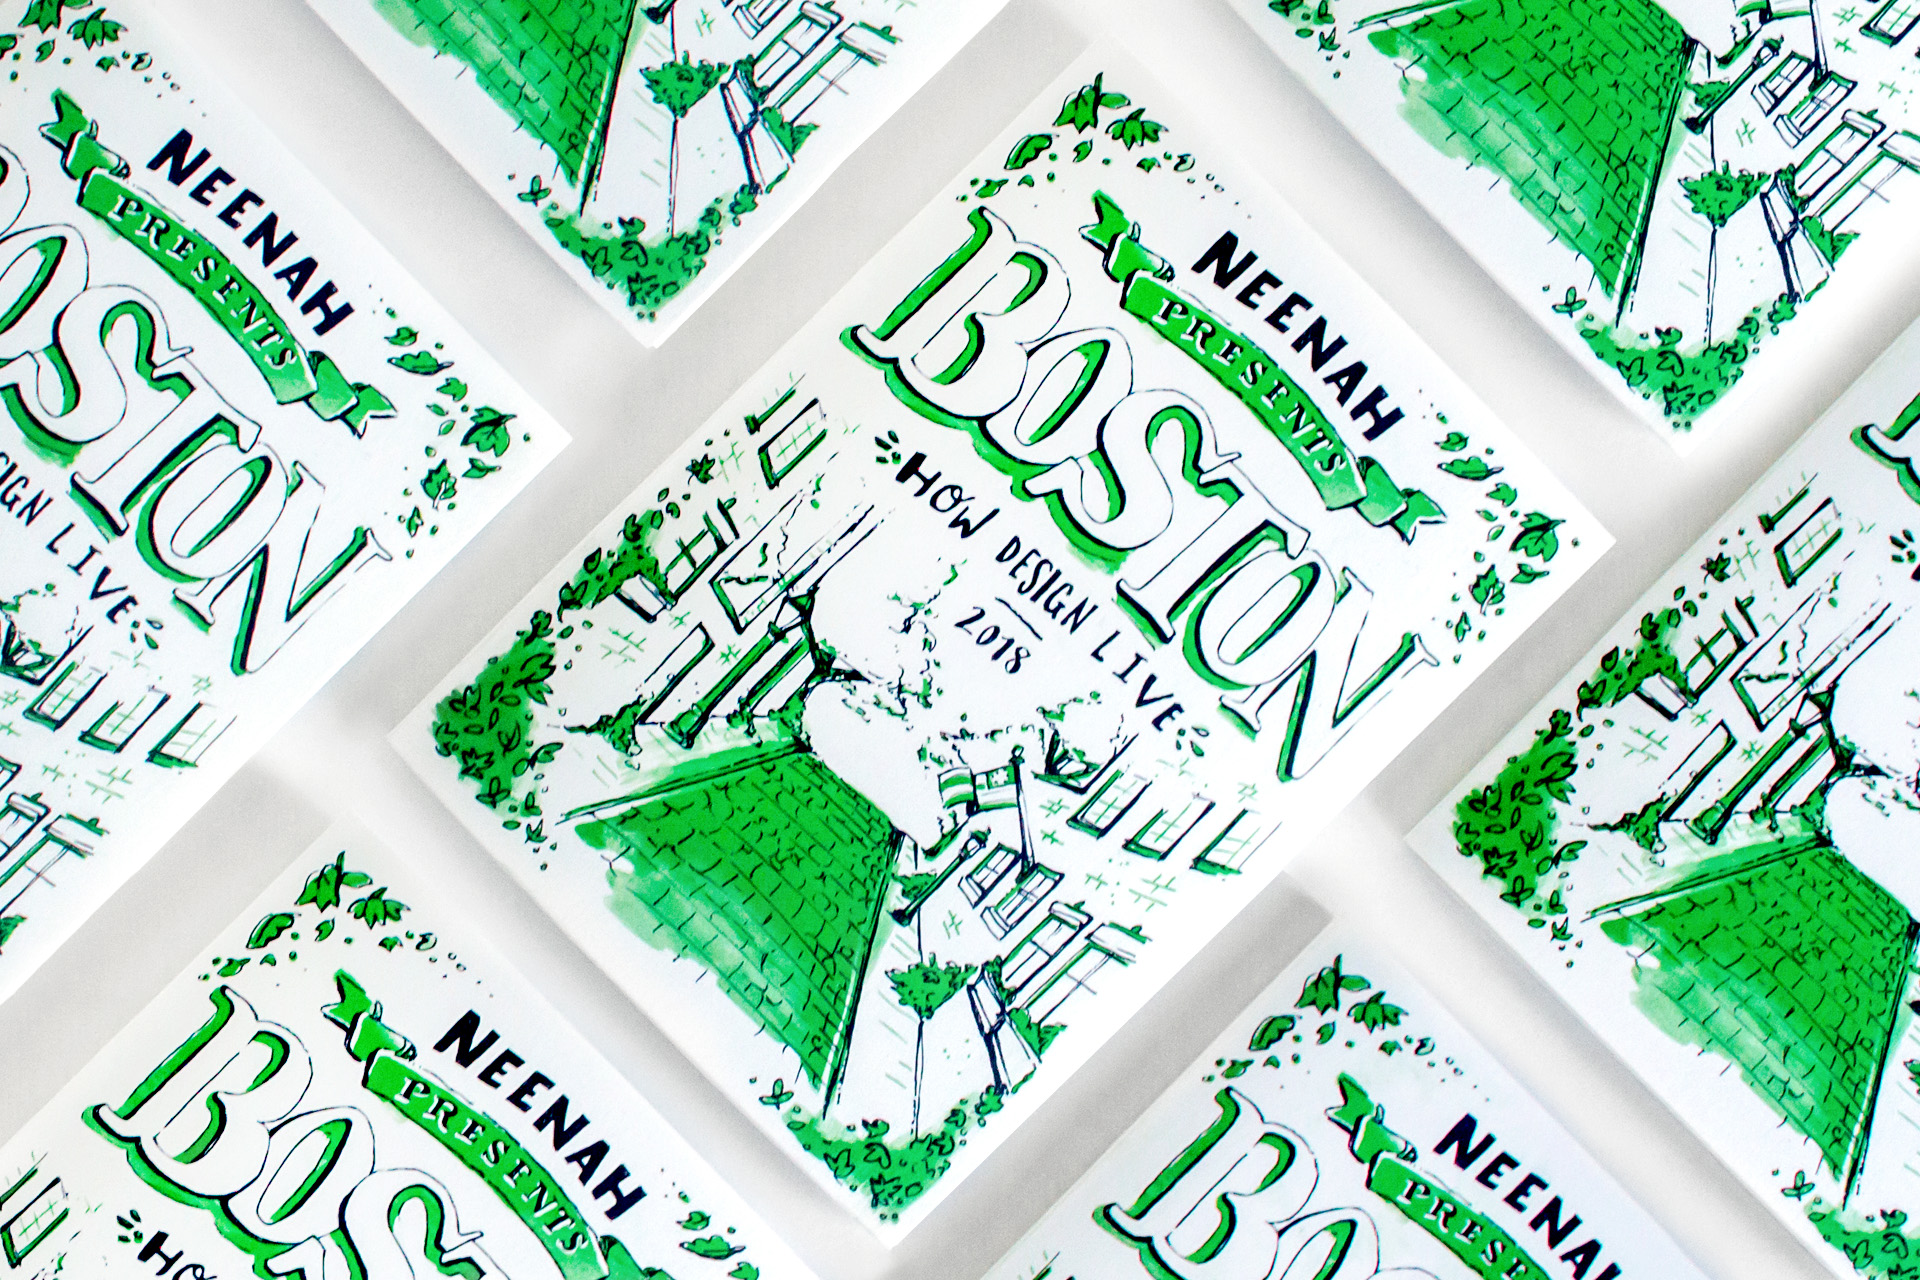 Hand lettering and hand drawn script for Neenah Paper Presents Boston at HOW Design Live conference in 2018 by freelance illustrator Russell Shaw.